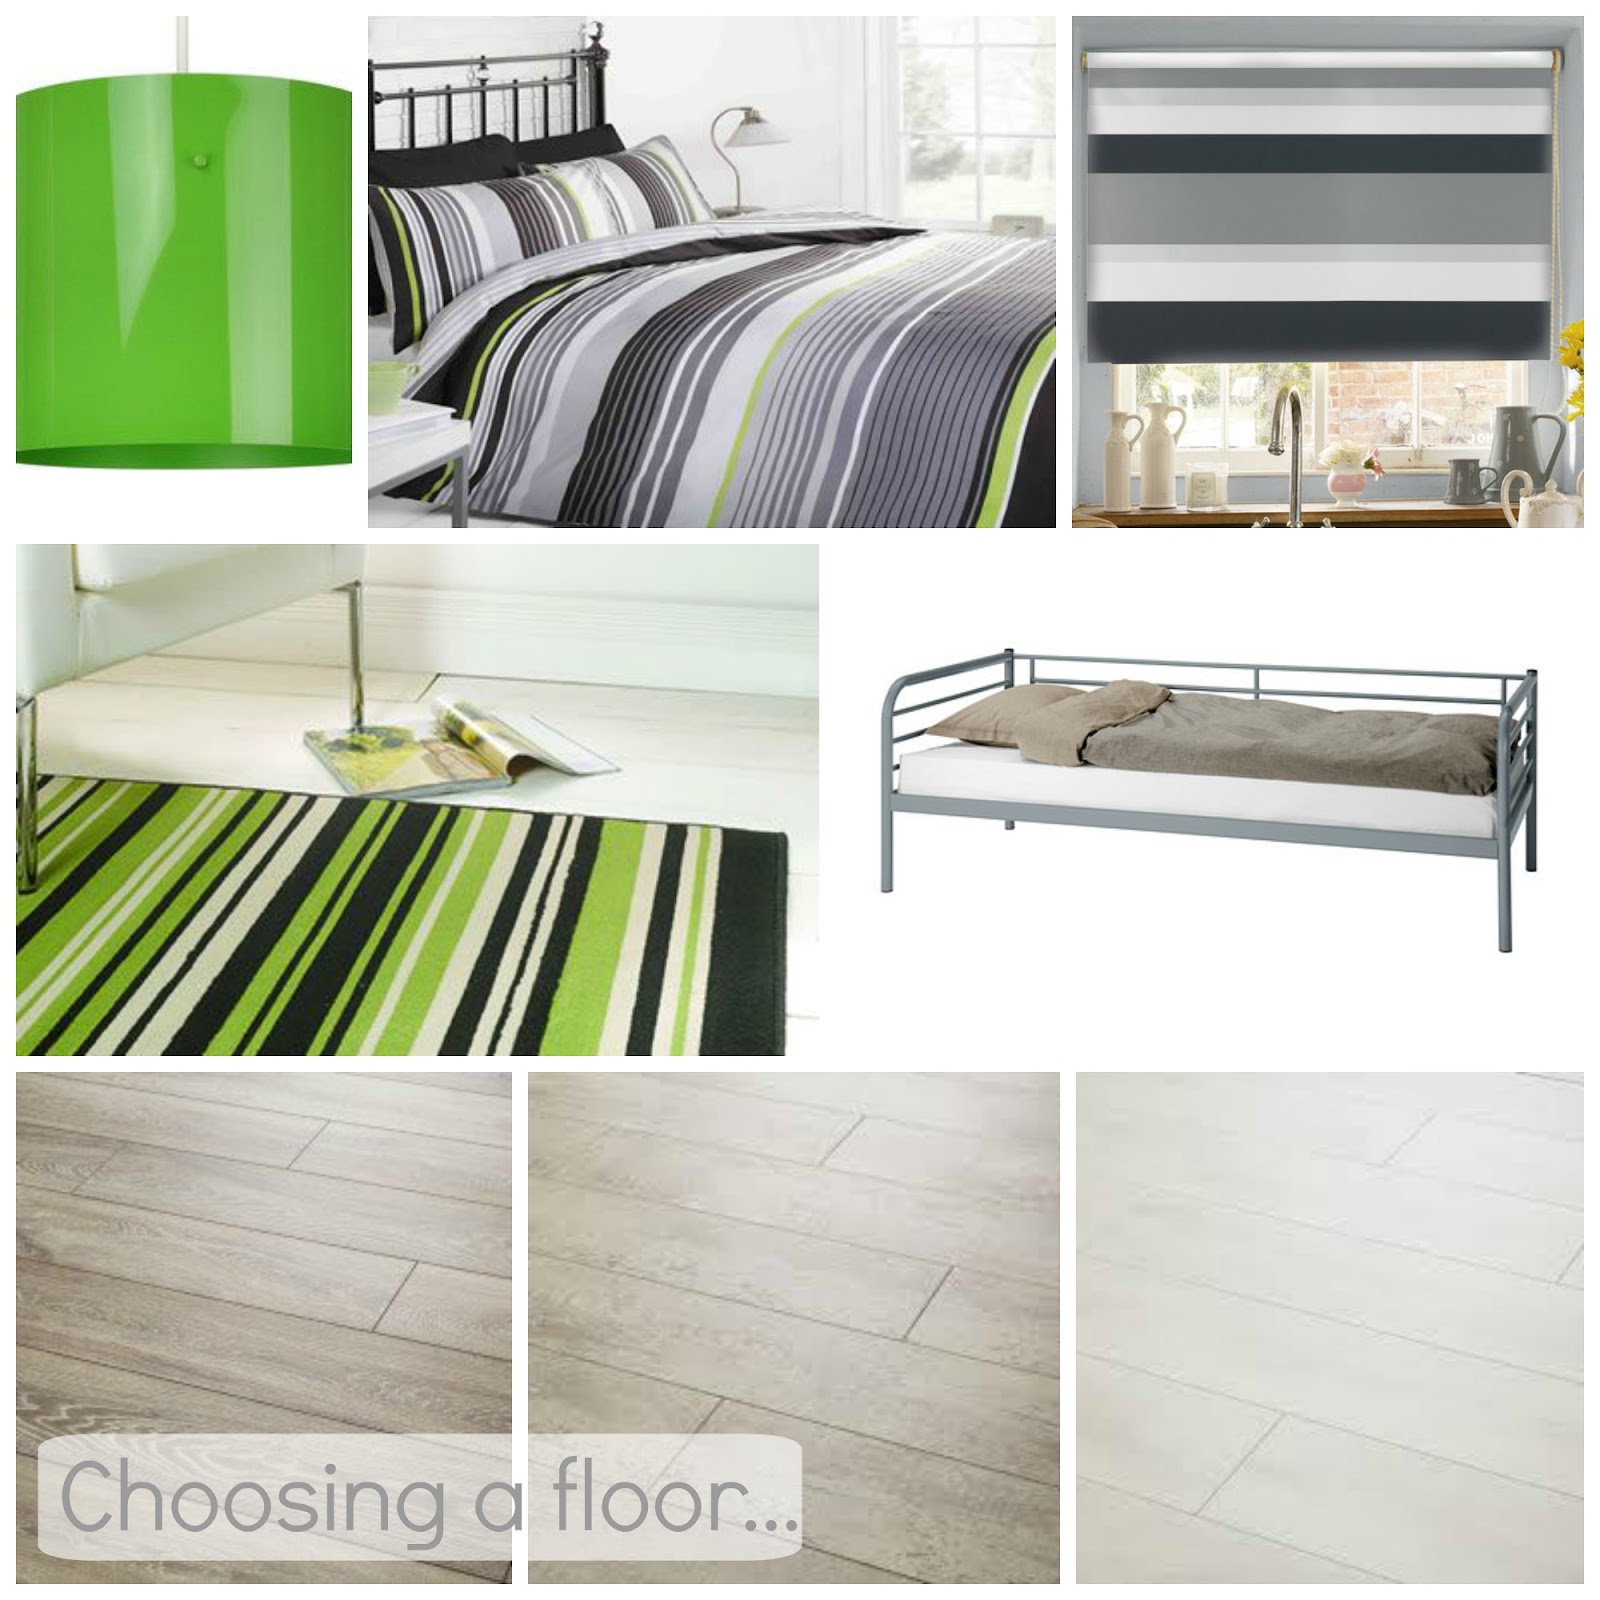 , Choosing a Floor for Danny's Bedroom